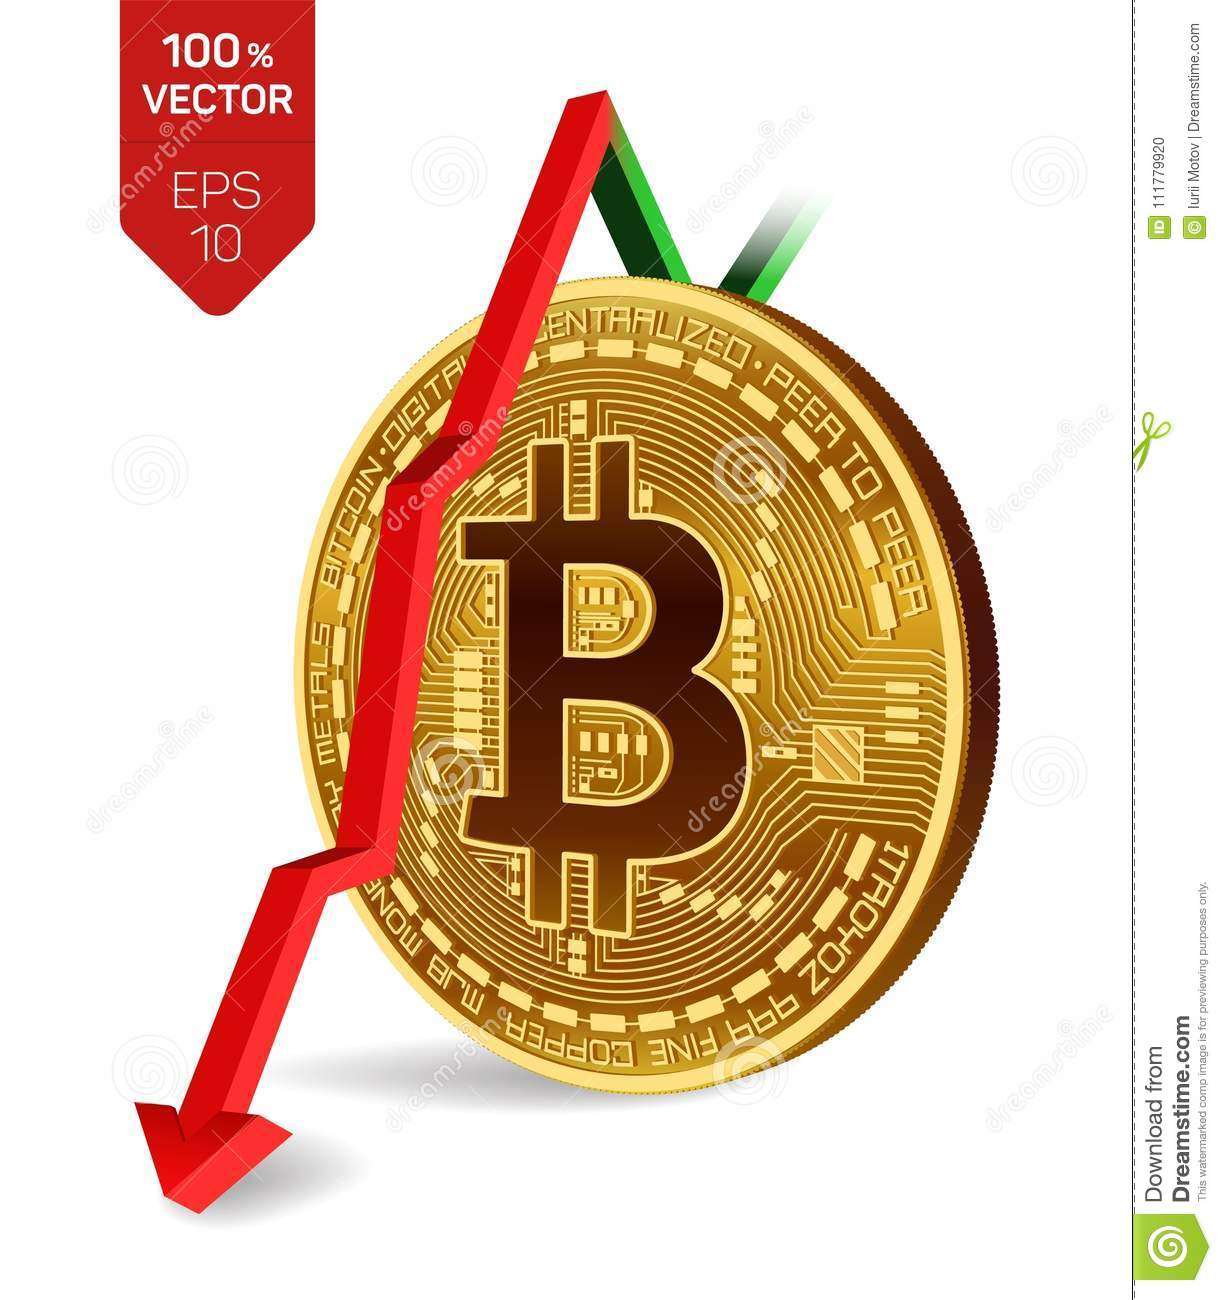 Bitcoin. Fall. Red arrow down. Bitcoin index rating go down on exchange market. Crypto currency. 3D isometric Physical Golden coin